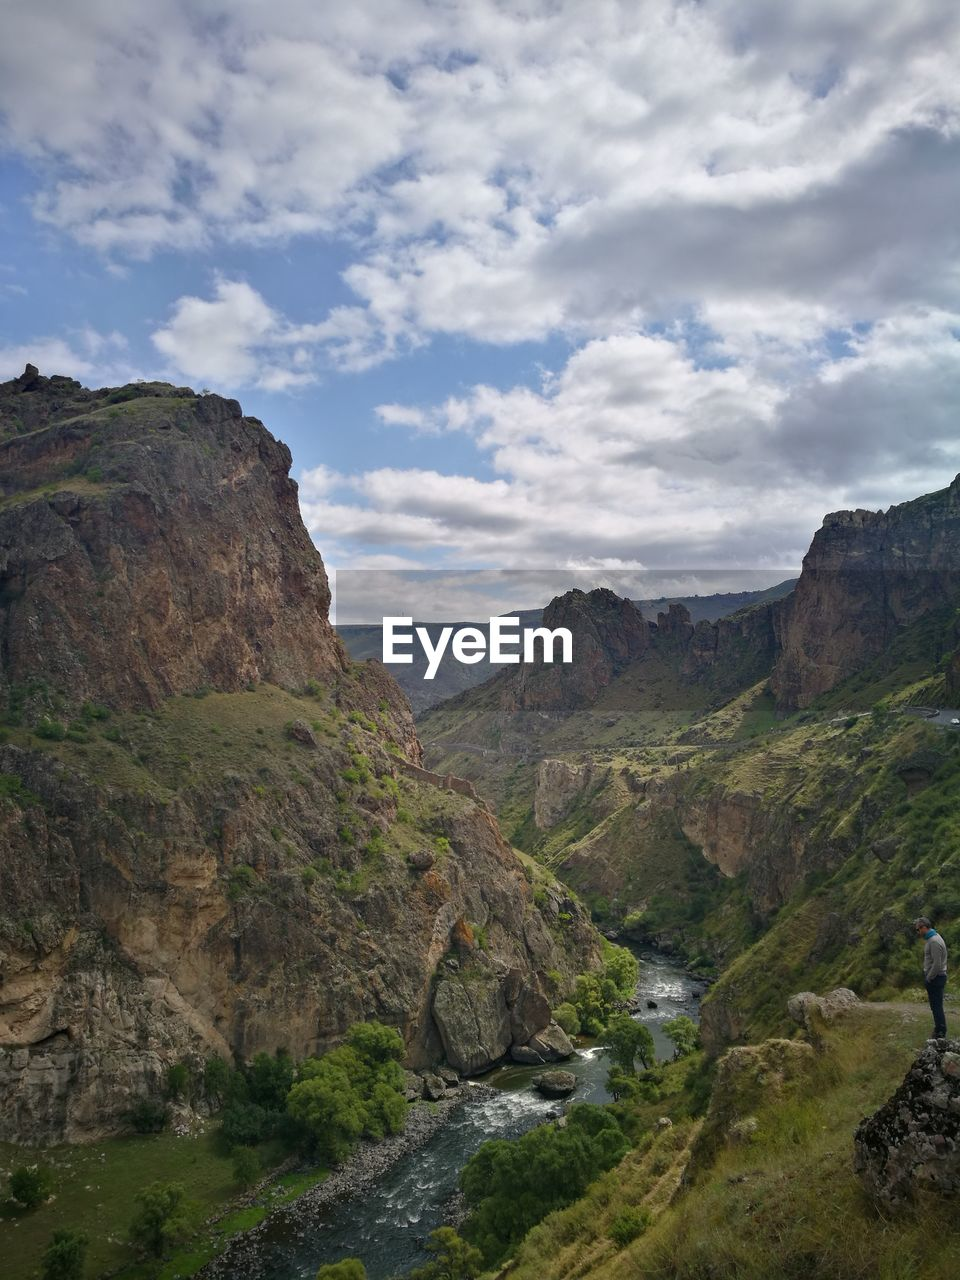 mountain, sky, environment, landscape, cloud - sky, nature, beauty in nature, rock, scenics - nature, land, mountain range, no people, travel, adventure, non-urban scene, scenery, outdoors, tranquility, tranquil scene, exploration, high, mountain peak, formation